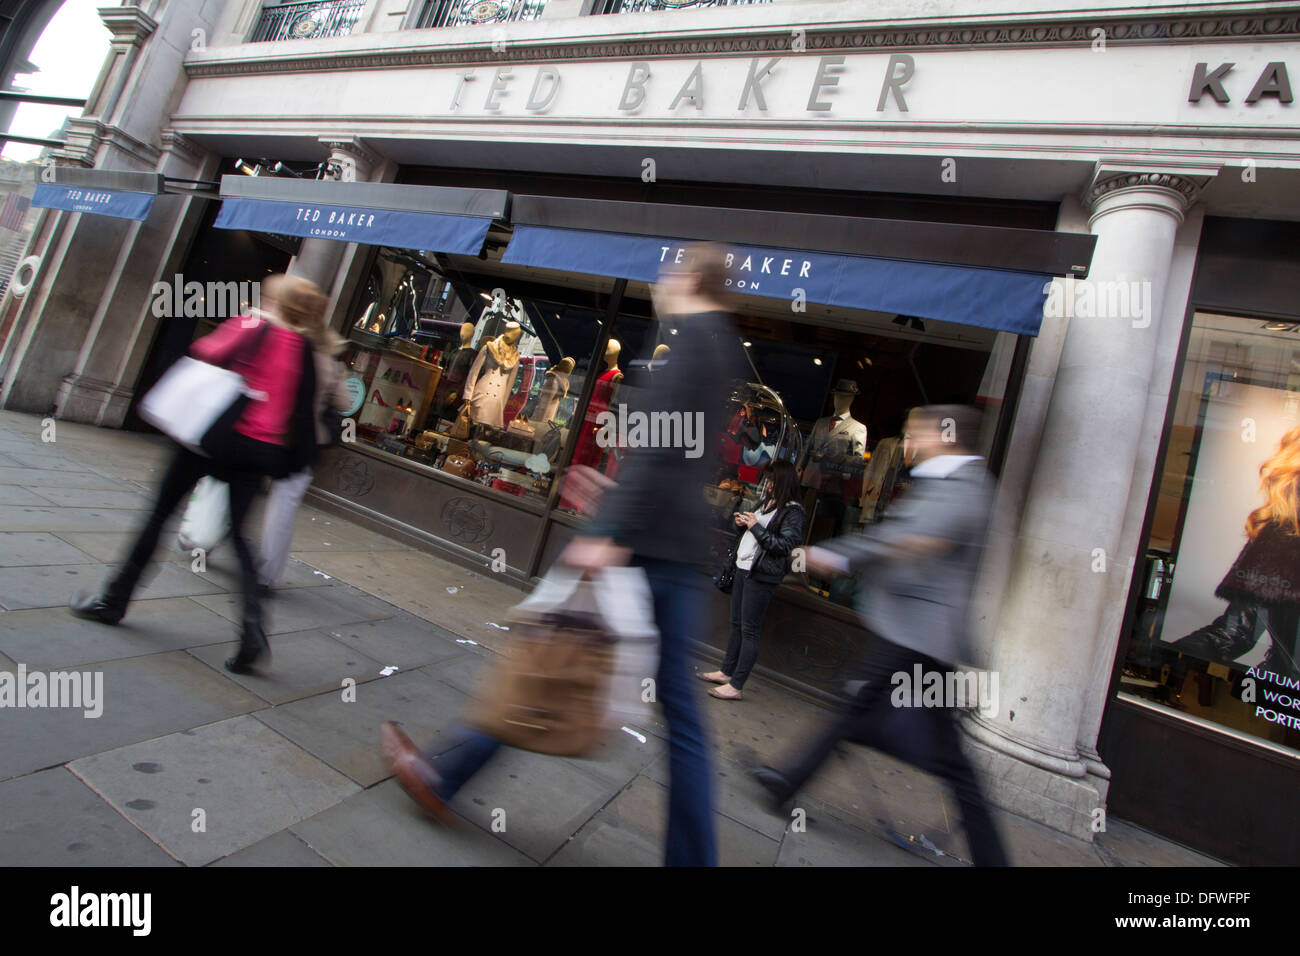 Ted Baker fashion outlet London - Stock Image